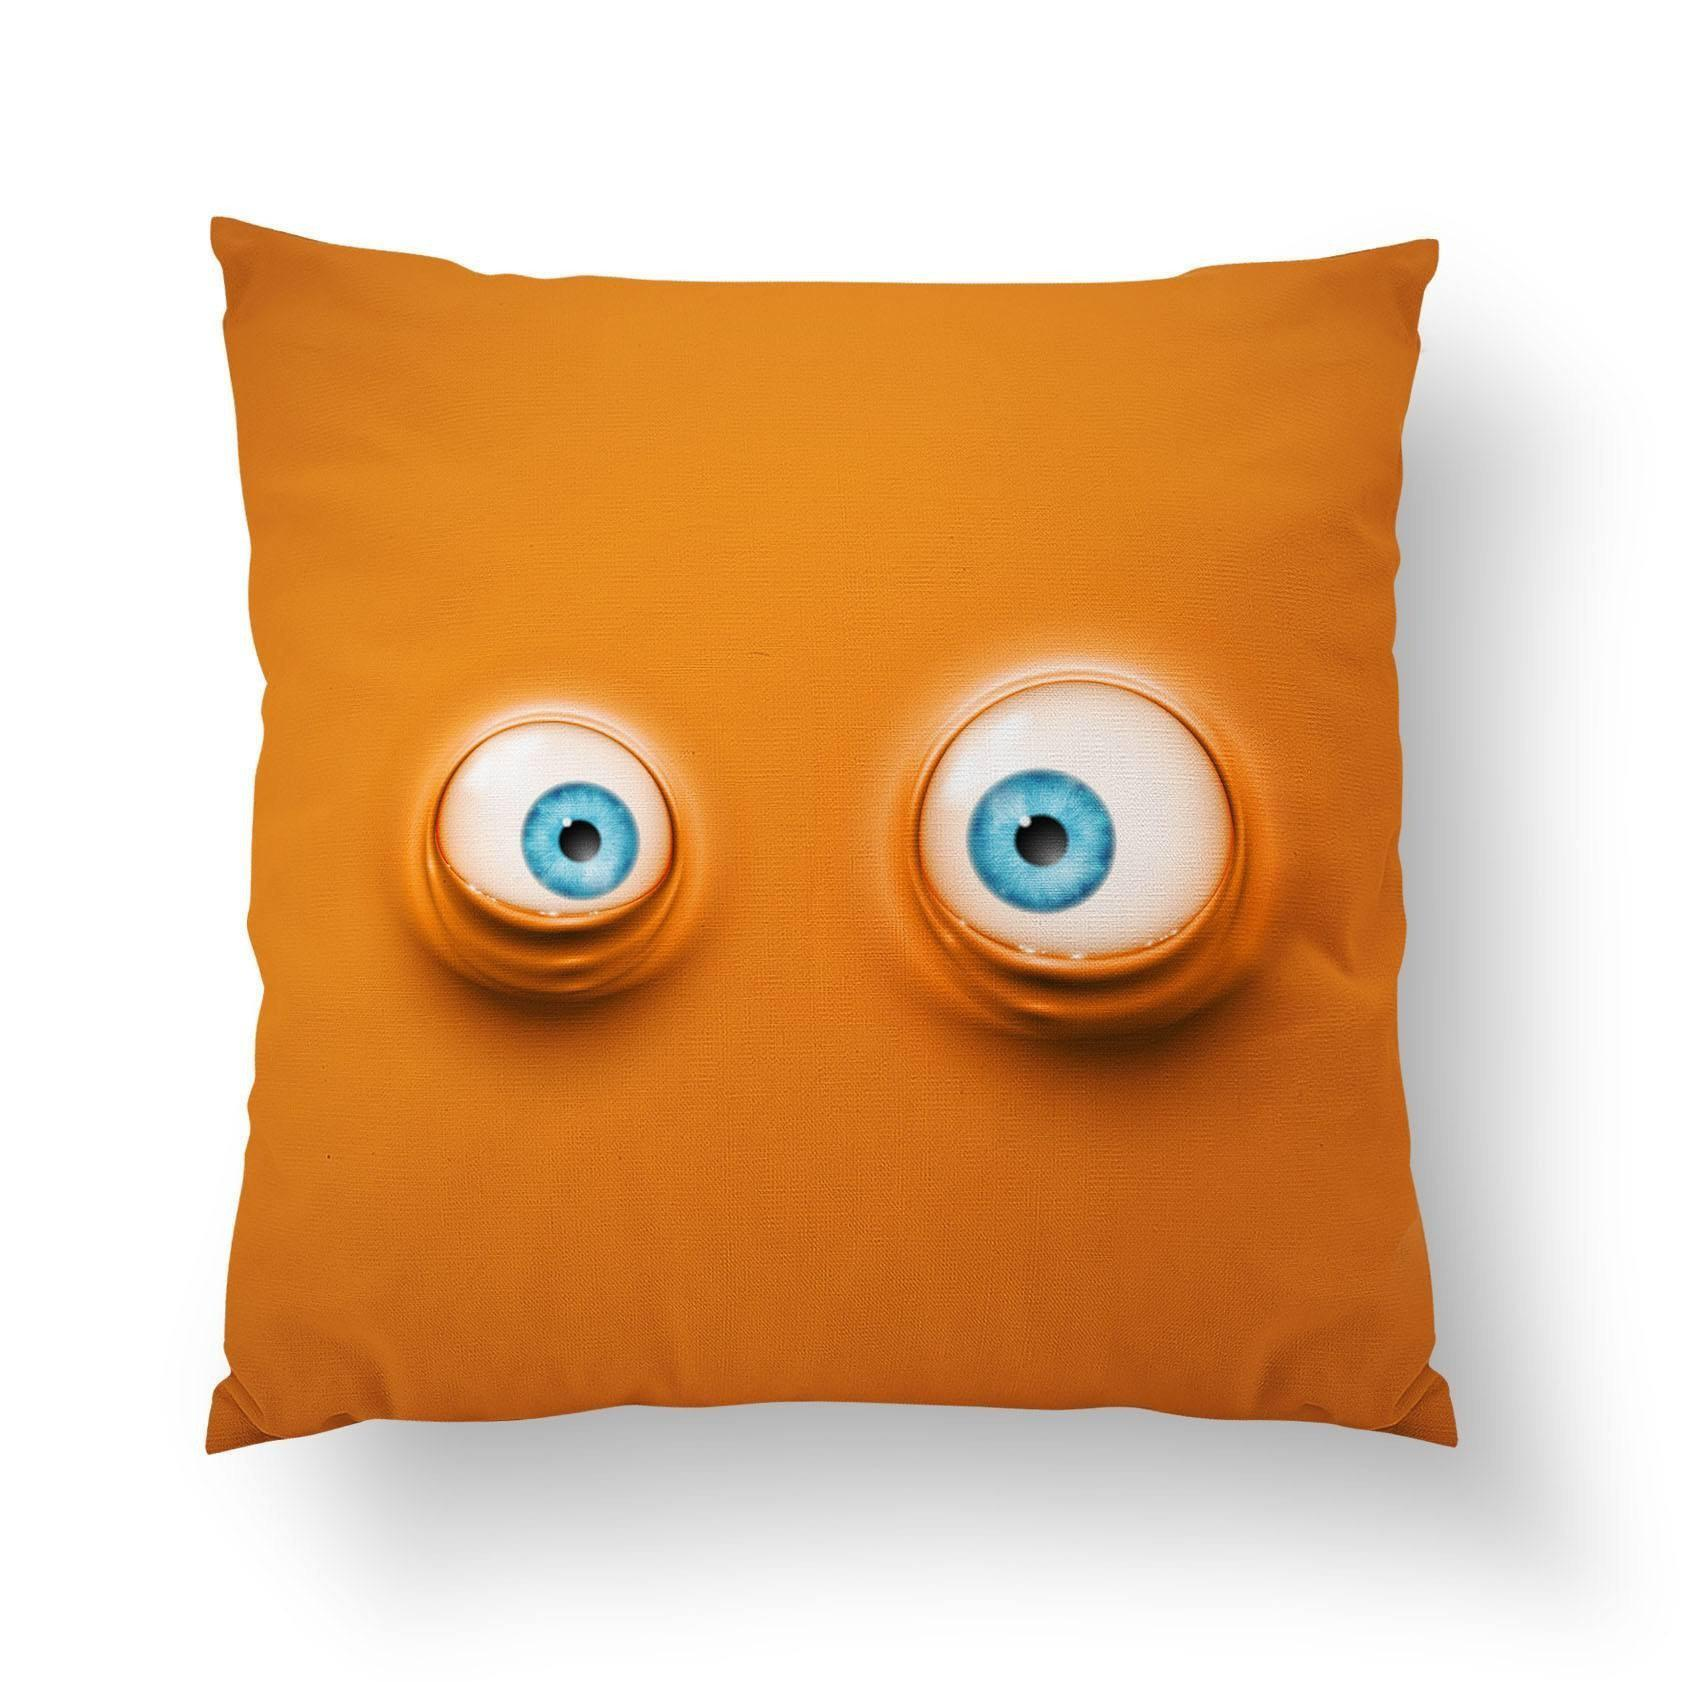 Monster Pillow - Pillow Covers - W.FRANCIS